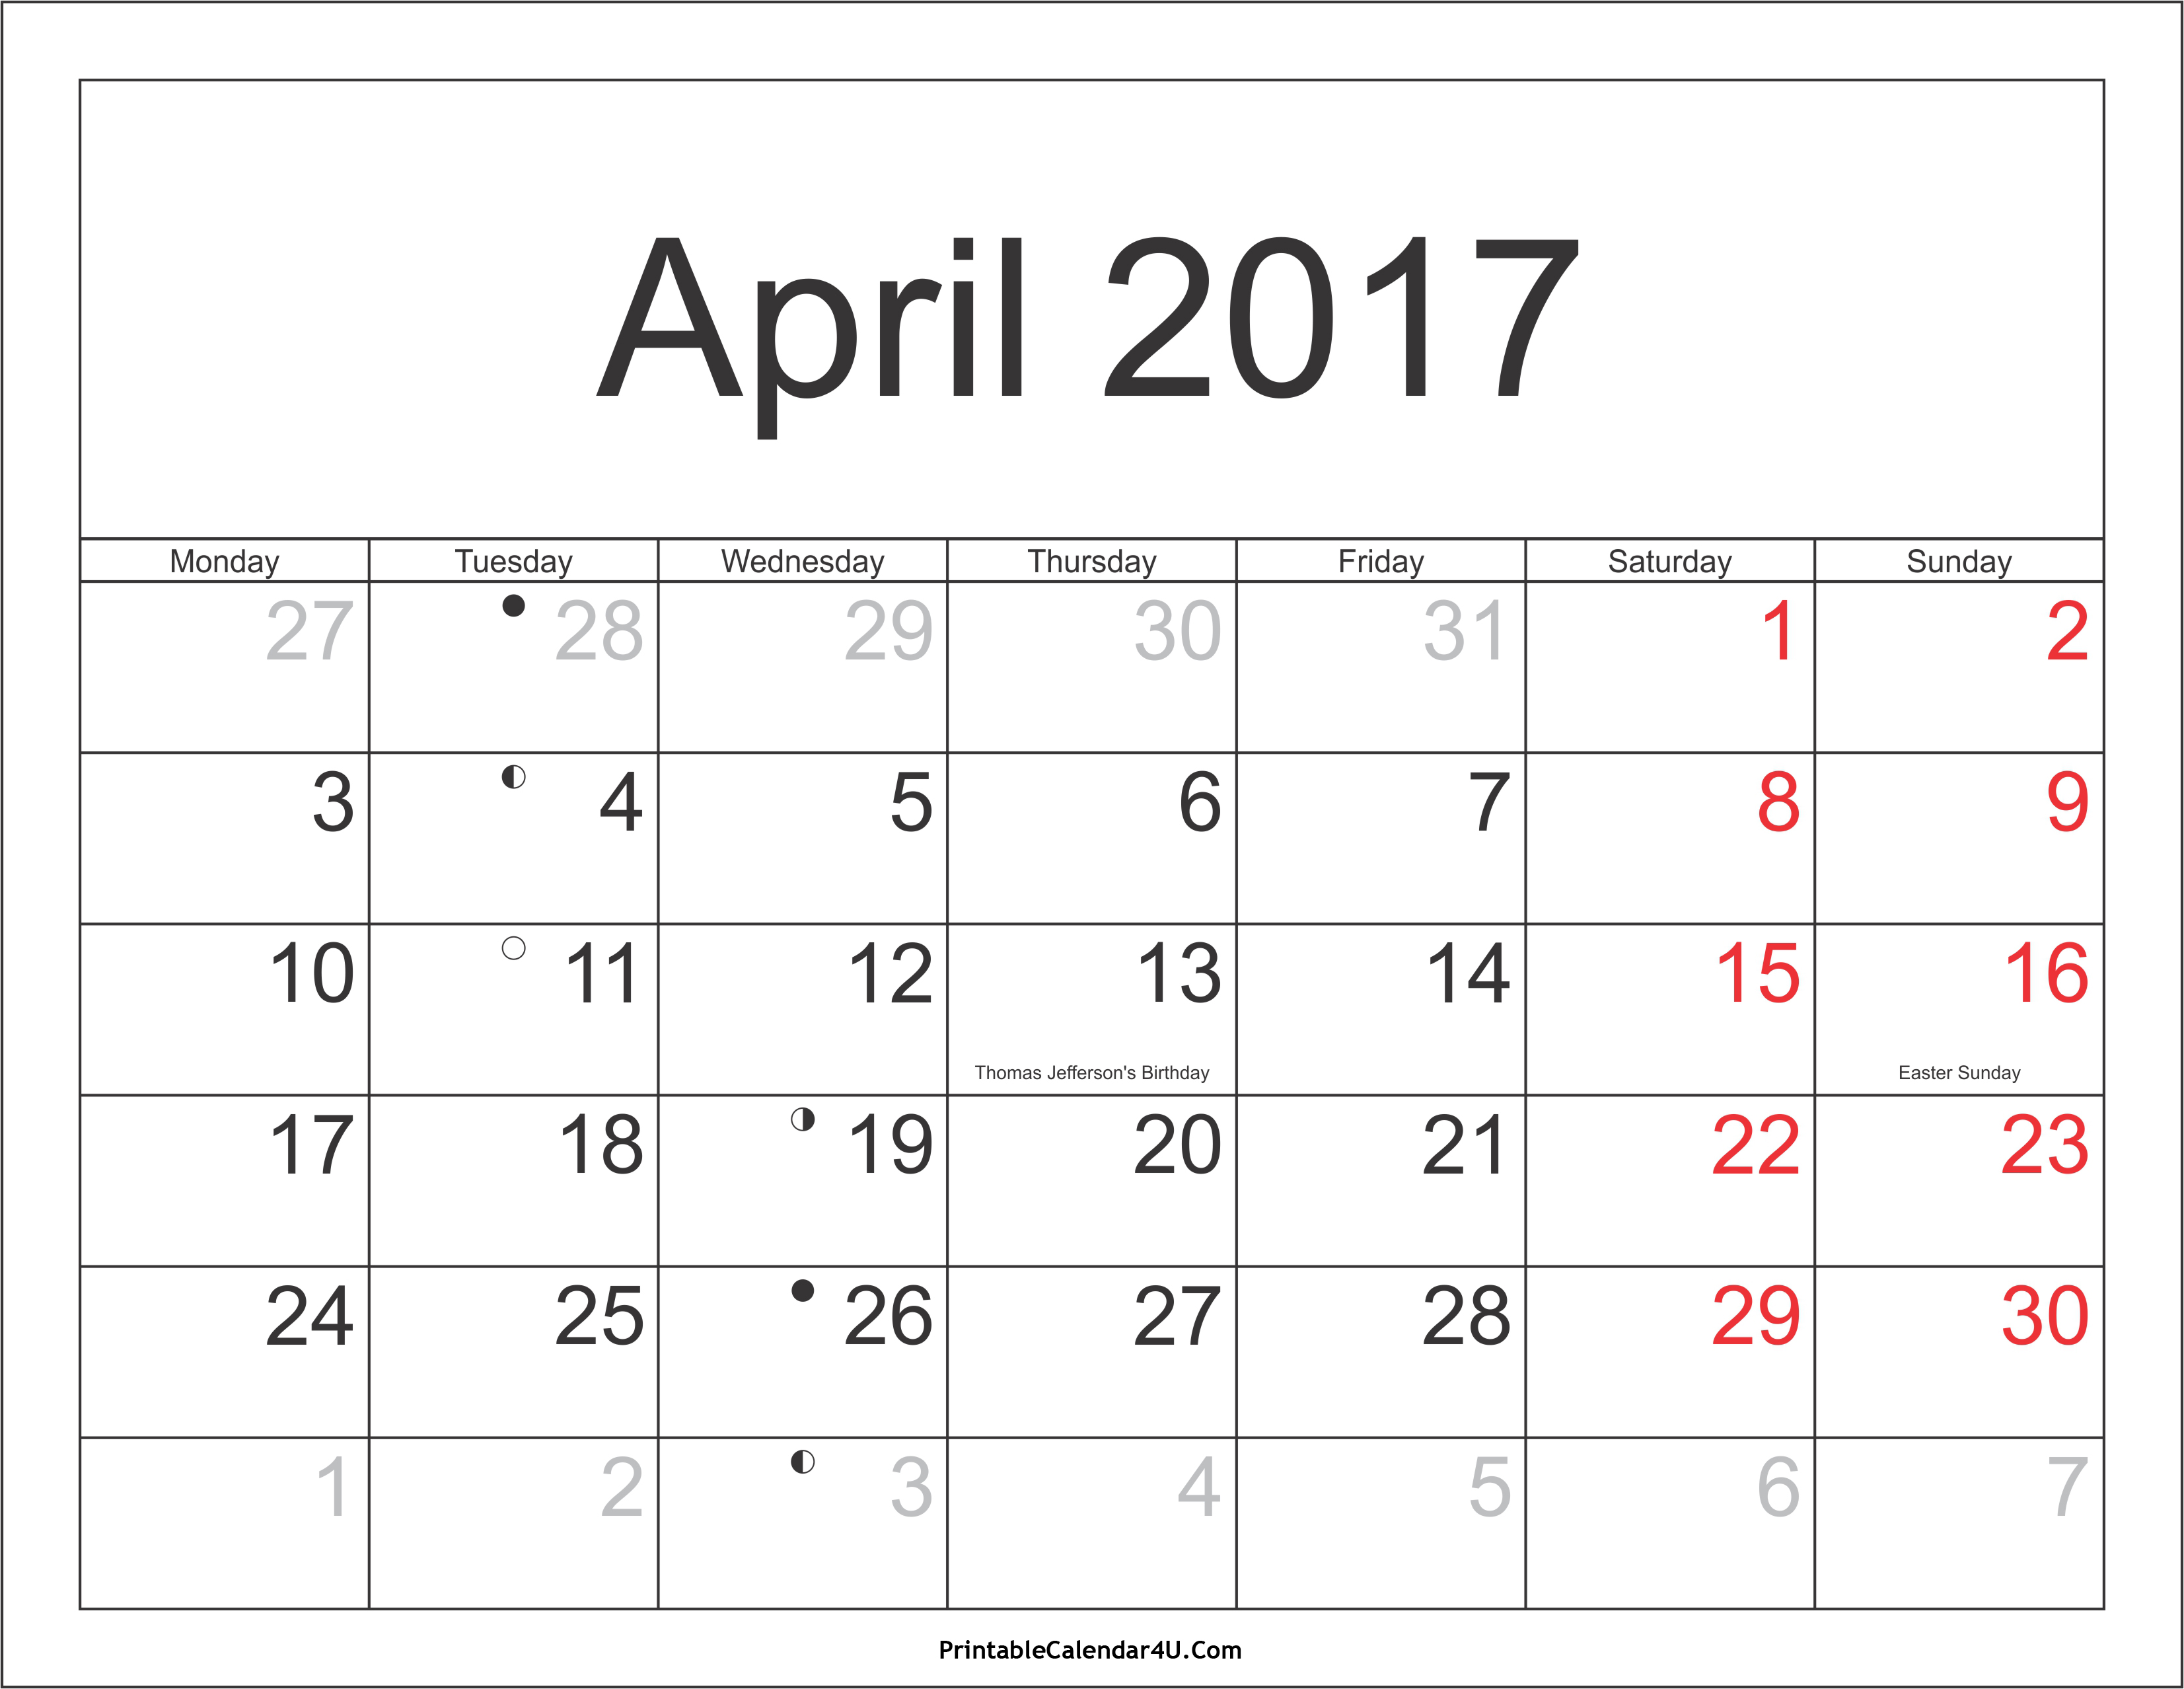 April 2017 Calendar | yearly calendar printable